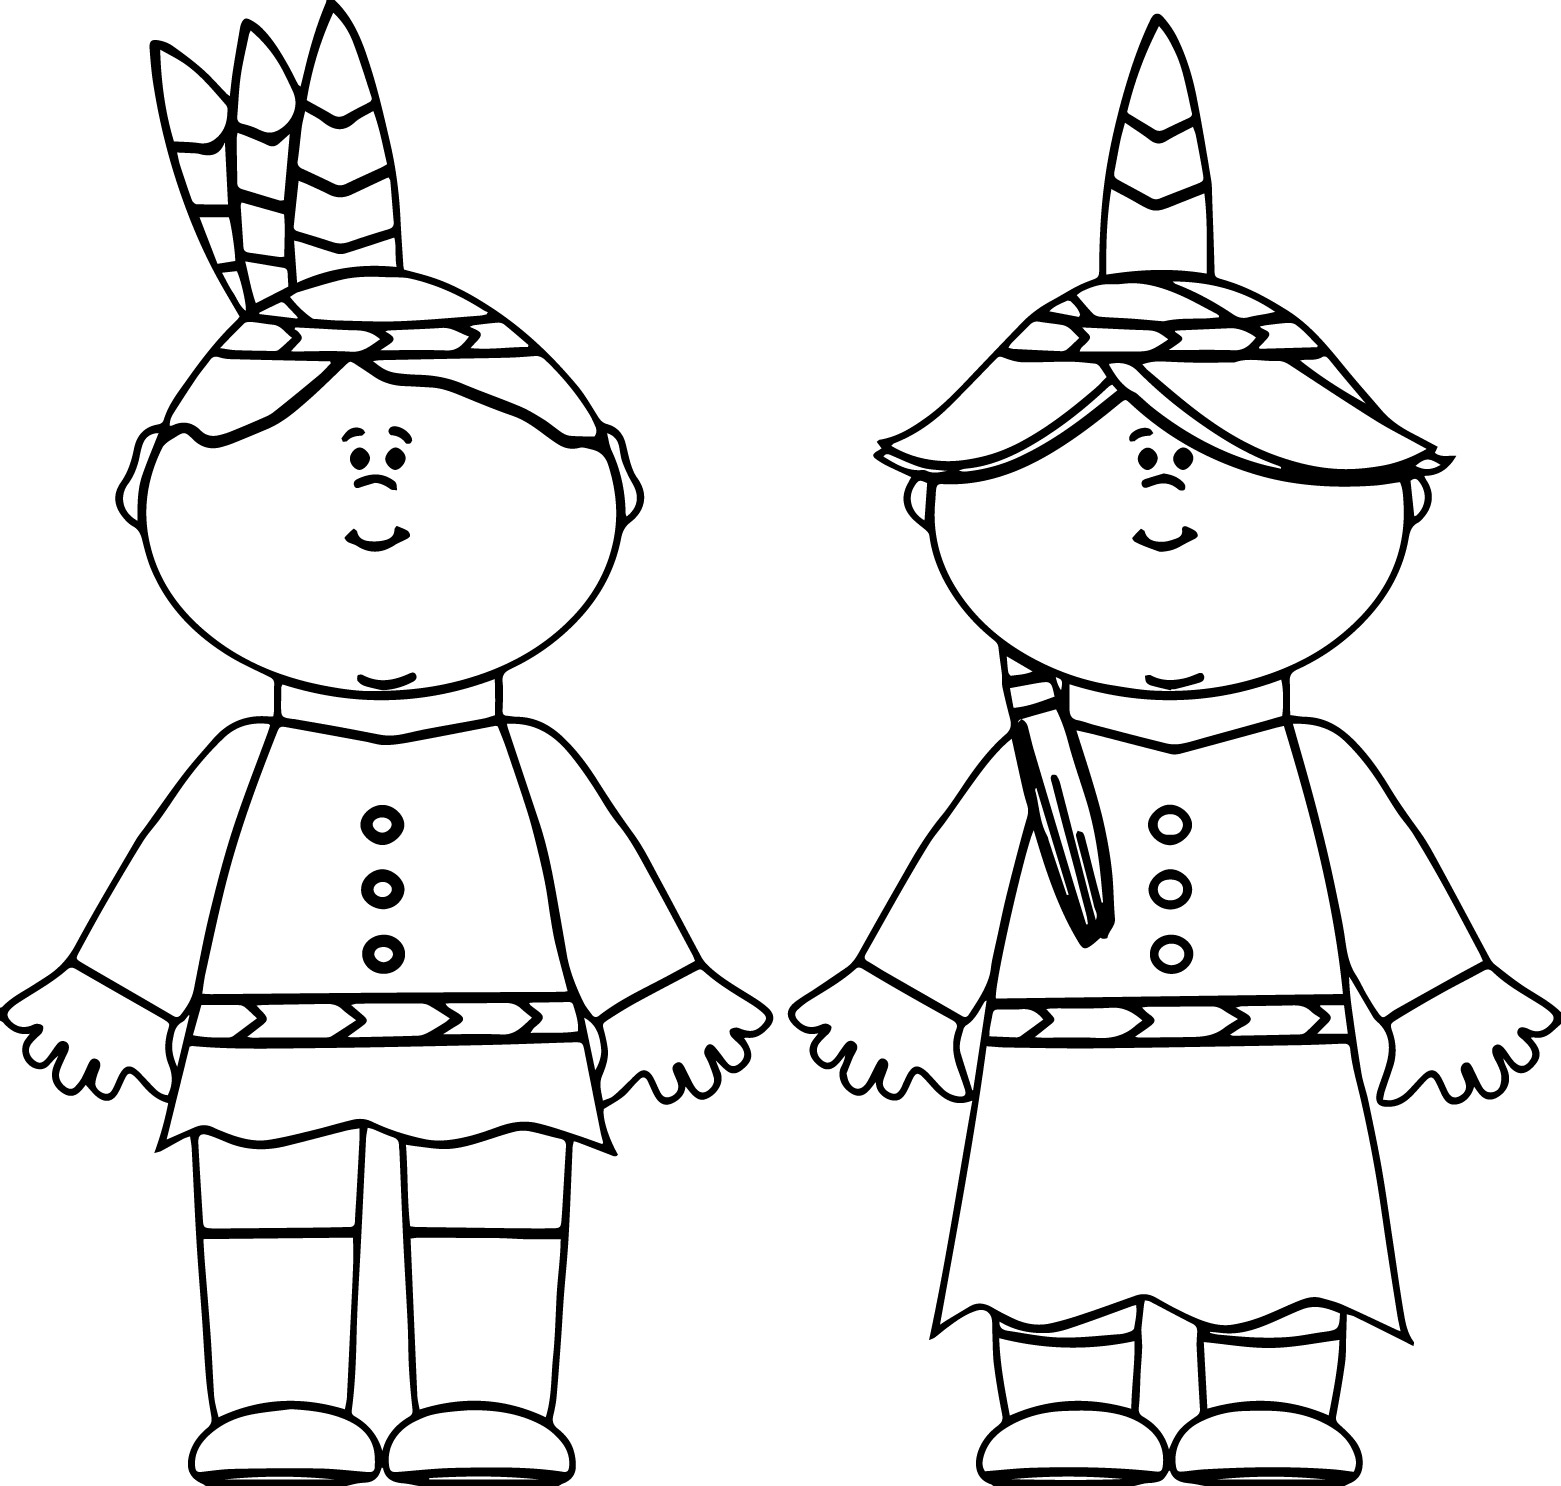 indain coloring pages - photo#35